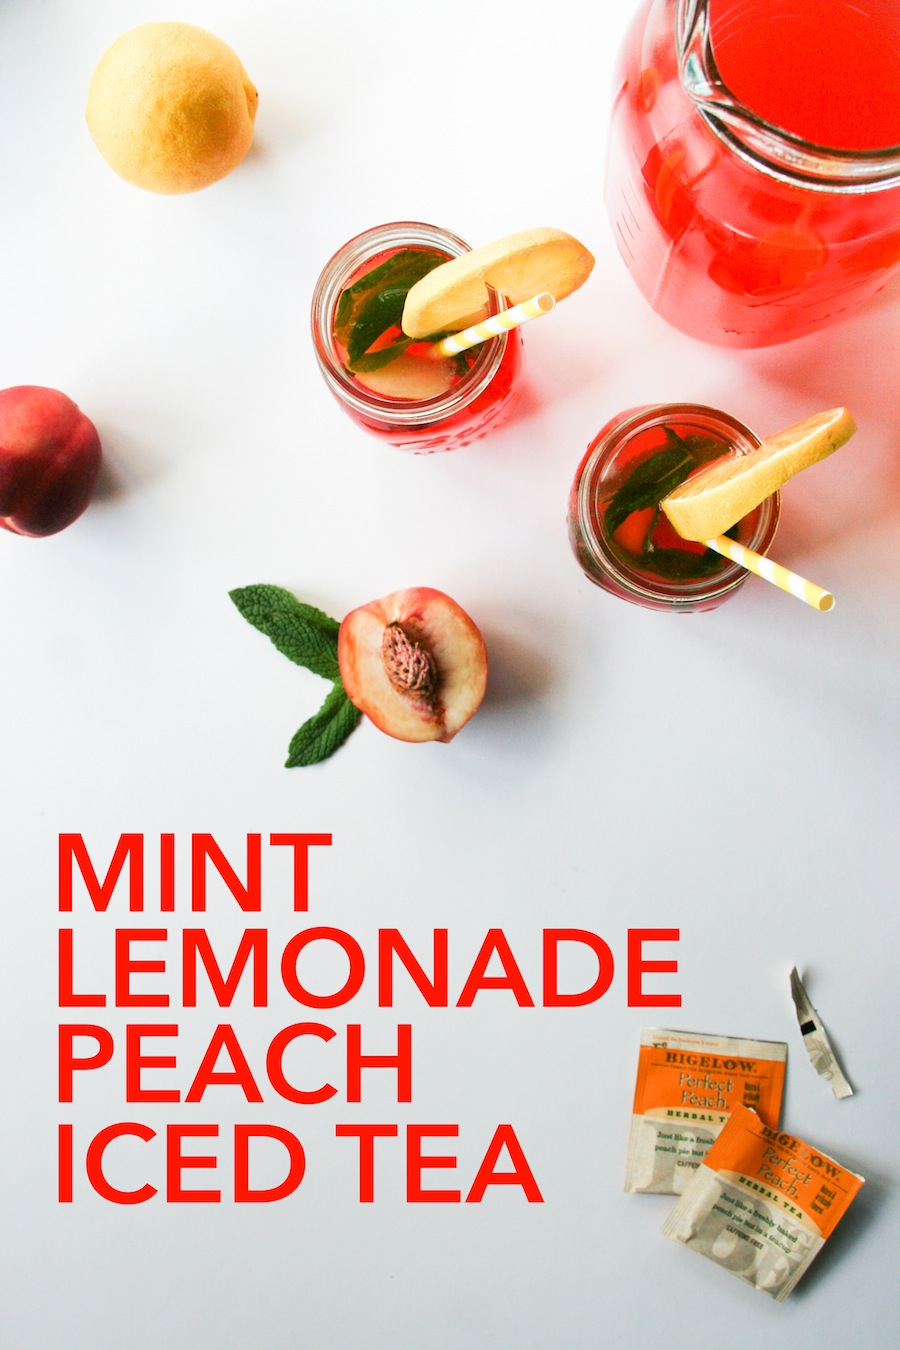 Mint Lemonade Peach Iced Tea Recipe // Legal Miss Sunshine